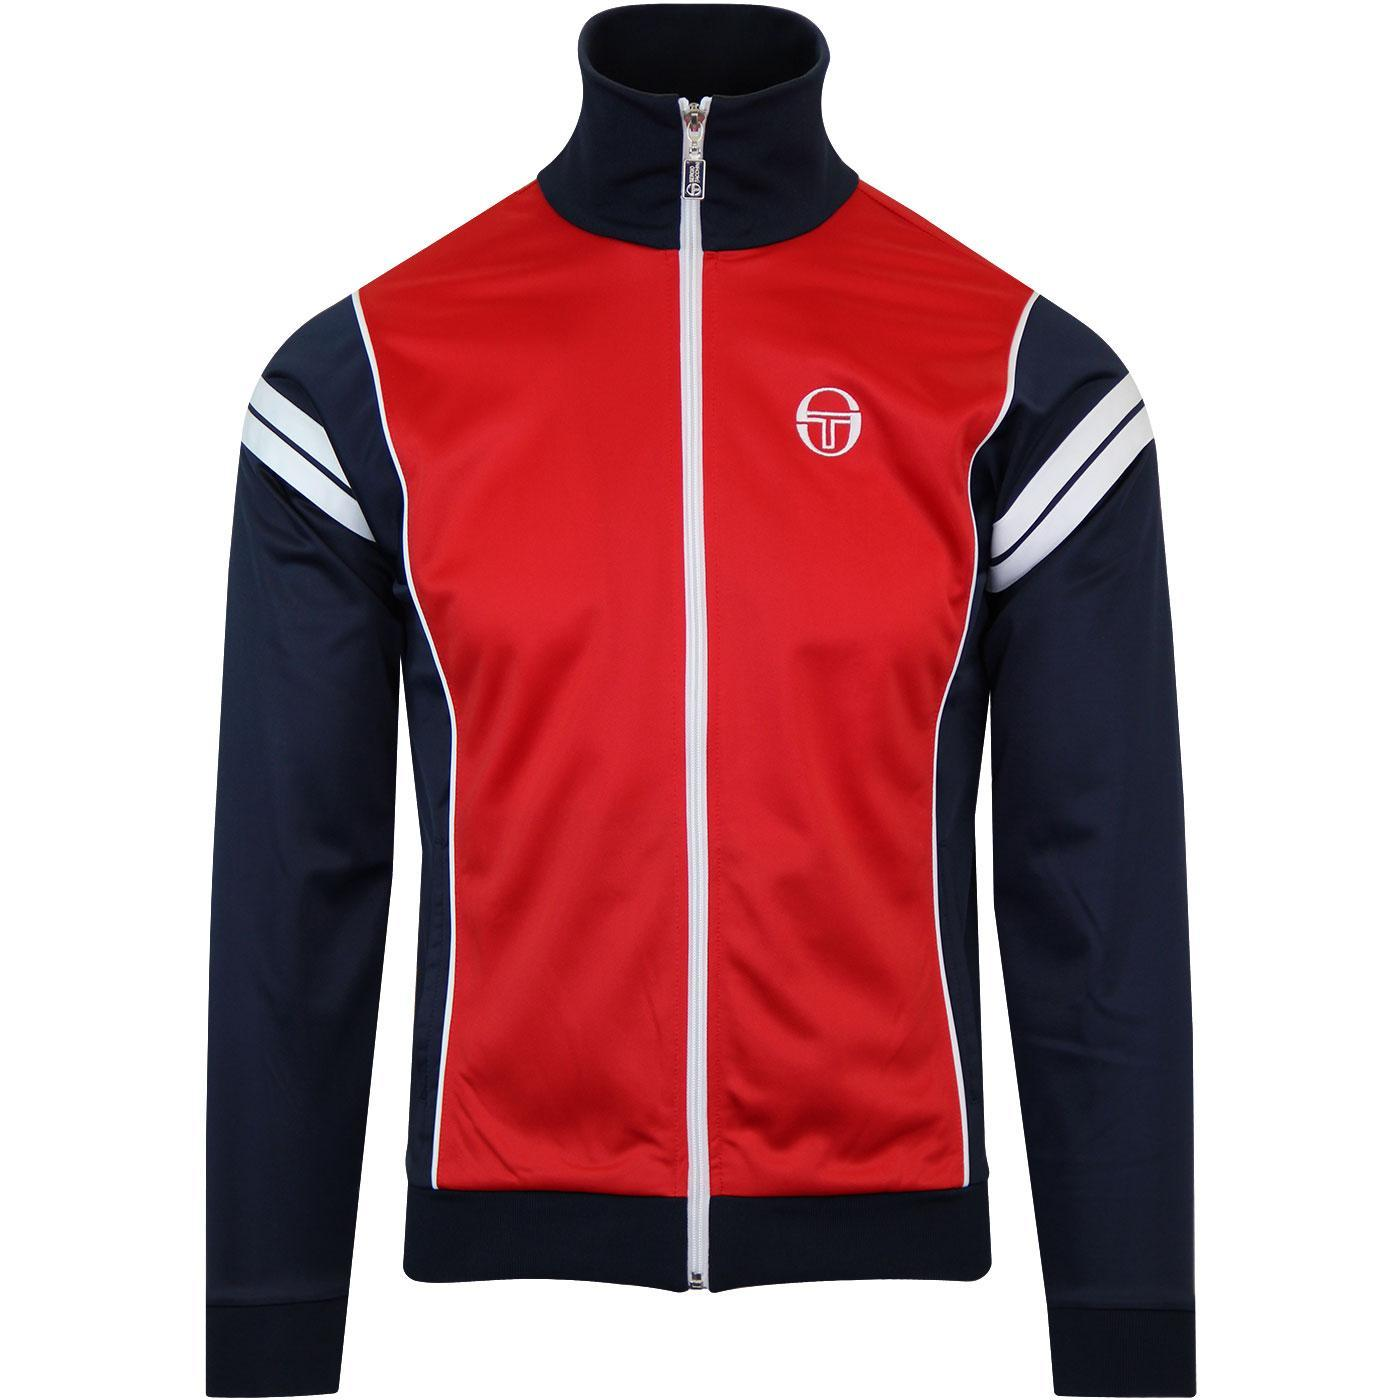 Sergio Tacchini Men's Scirocco Track Top Various Colours 37707 - S Red Navy